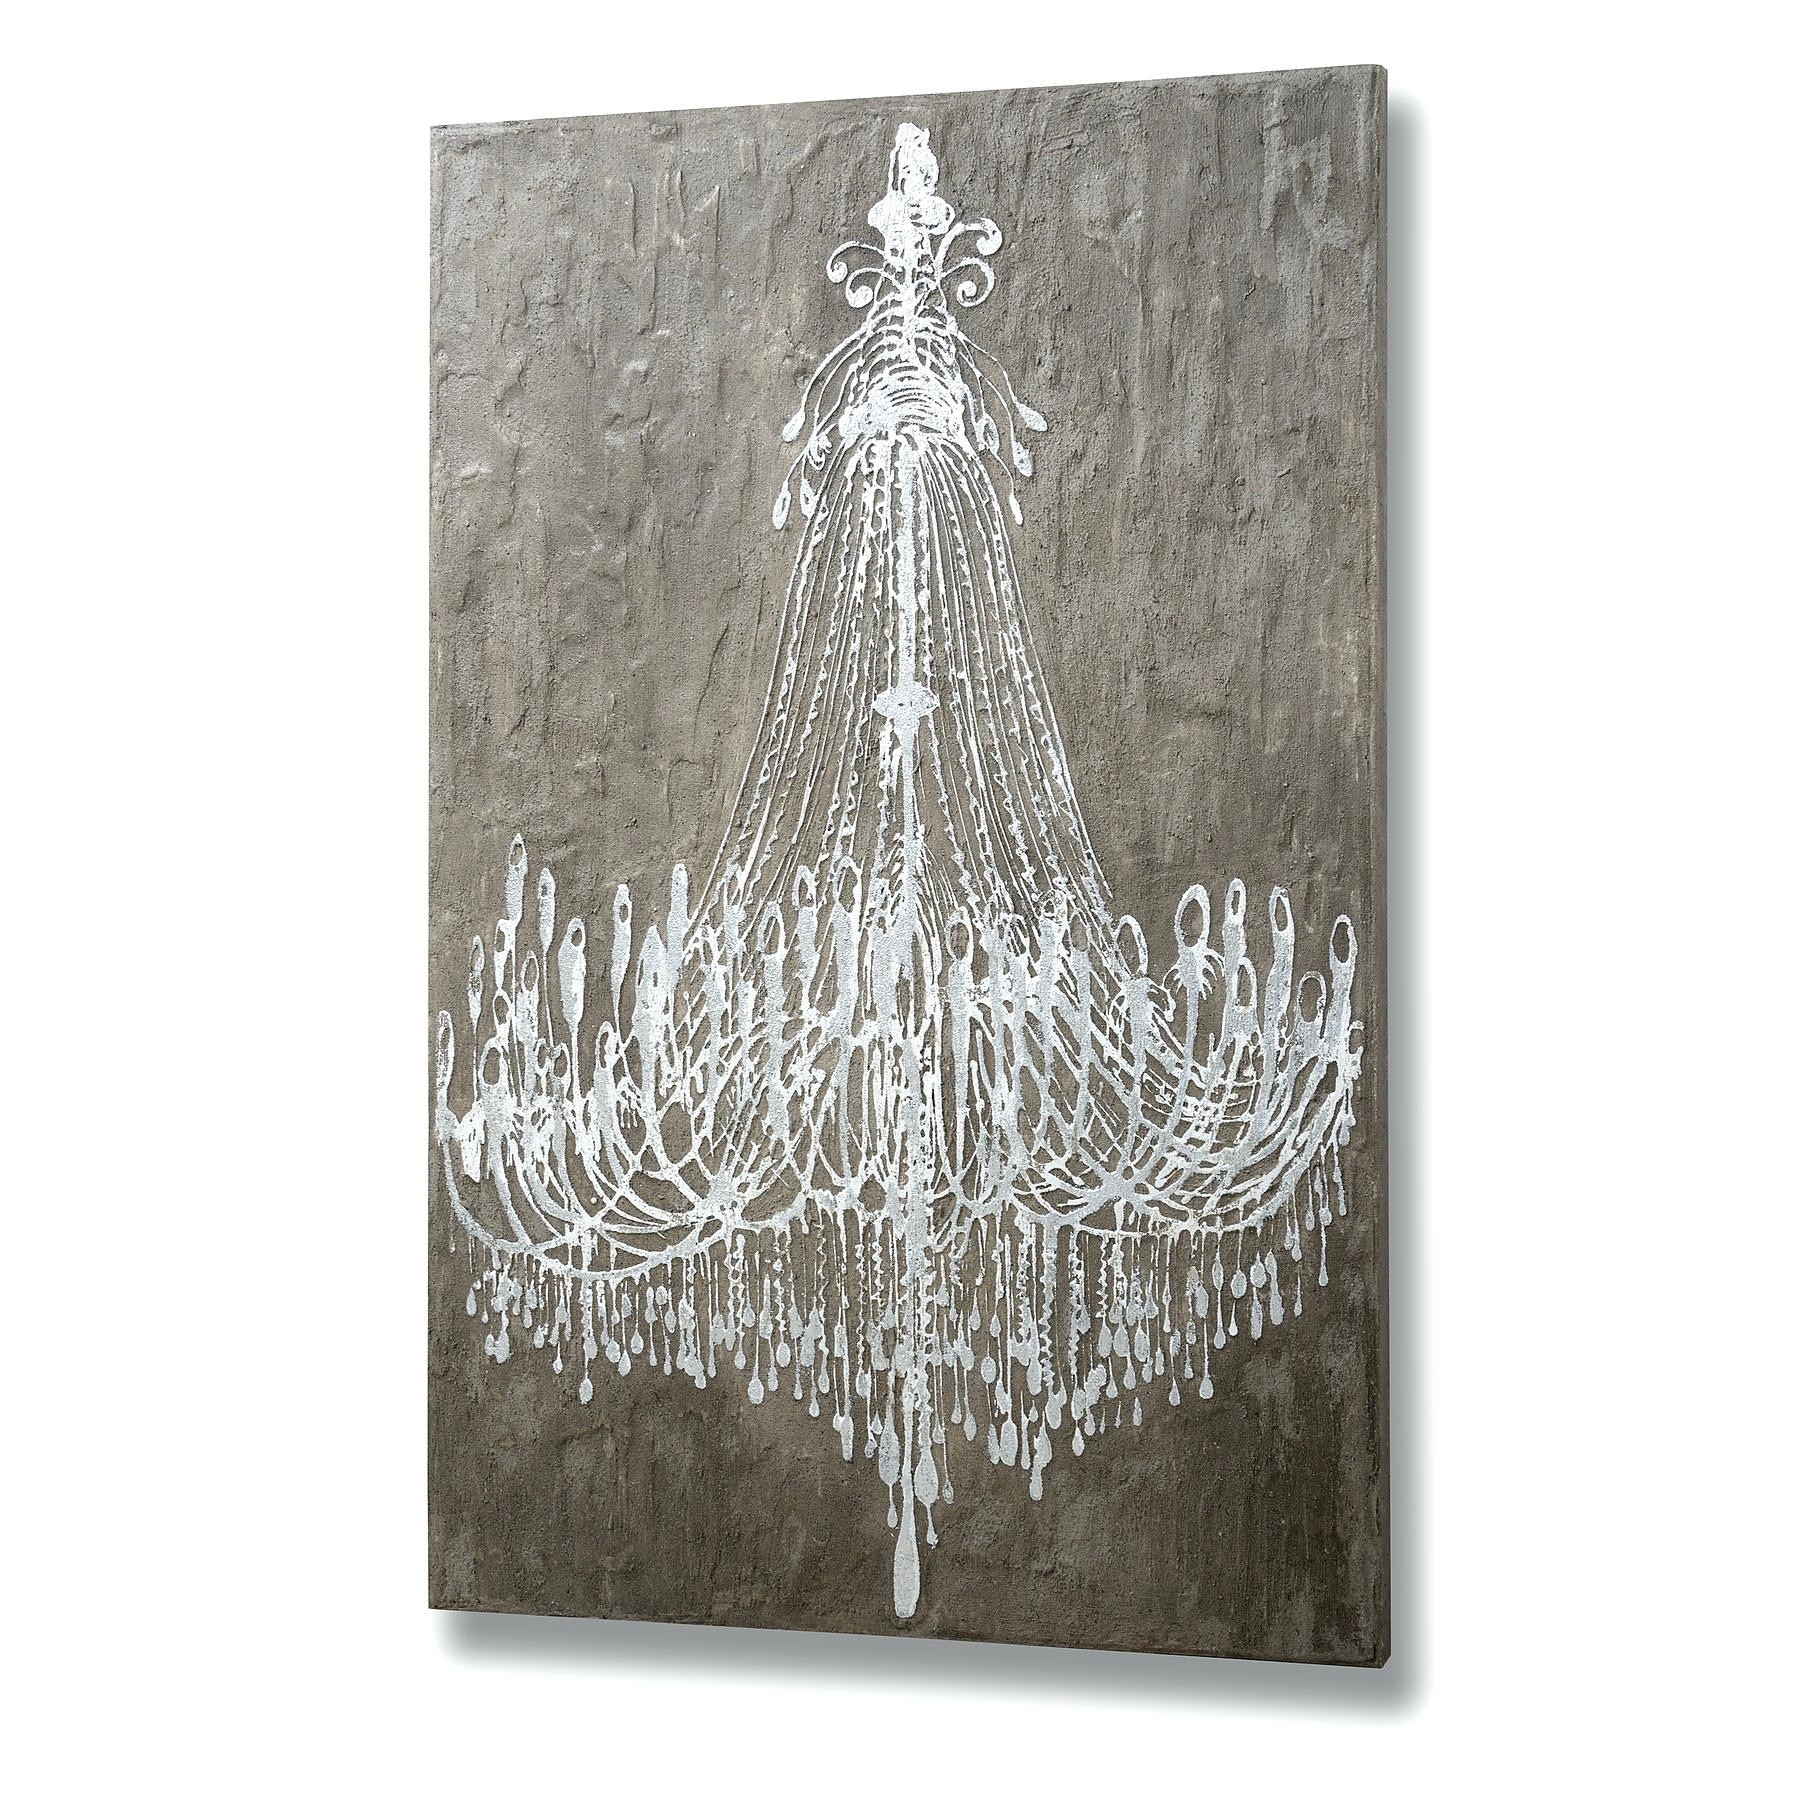 Chandelier Canvas Art Unique Wall Ideas Chandelier Wall Art Intended For Latest Chandelier Canvas Wall Art (Gallery 10 of 15)